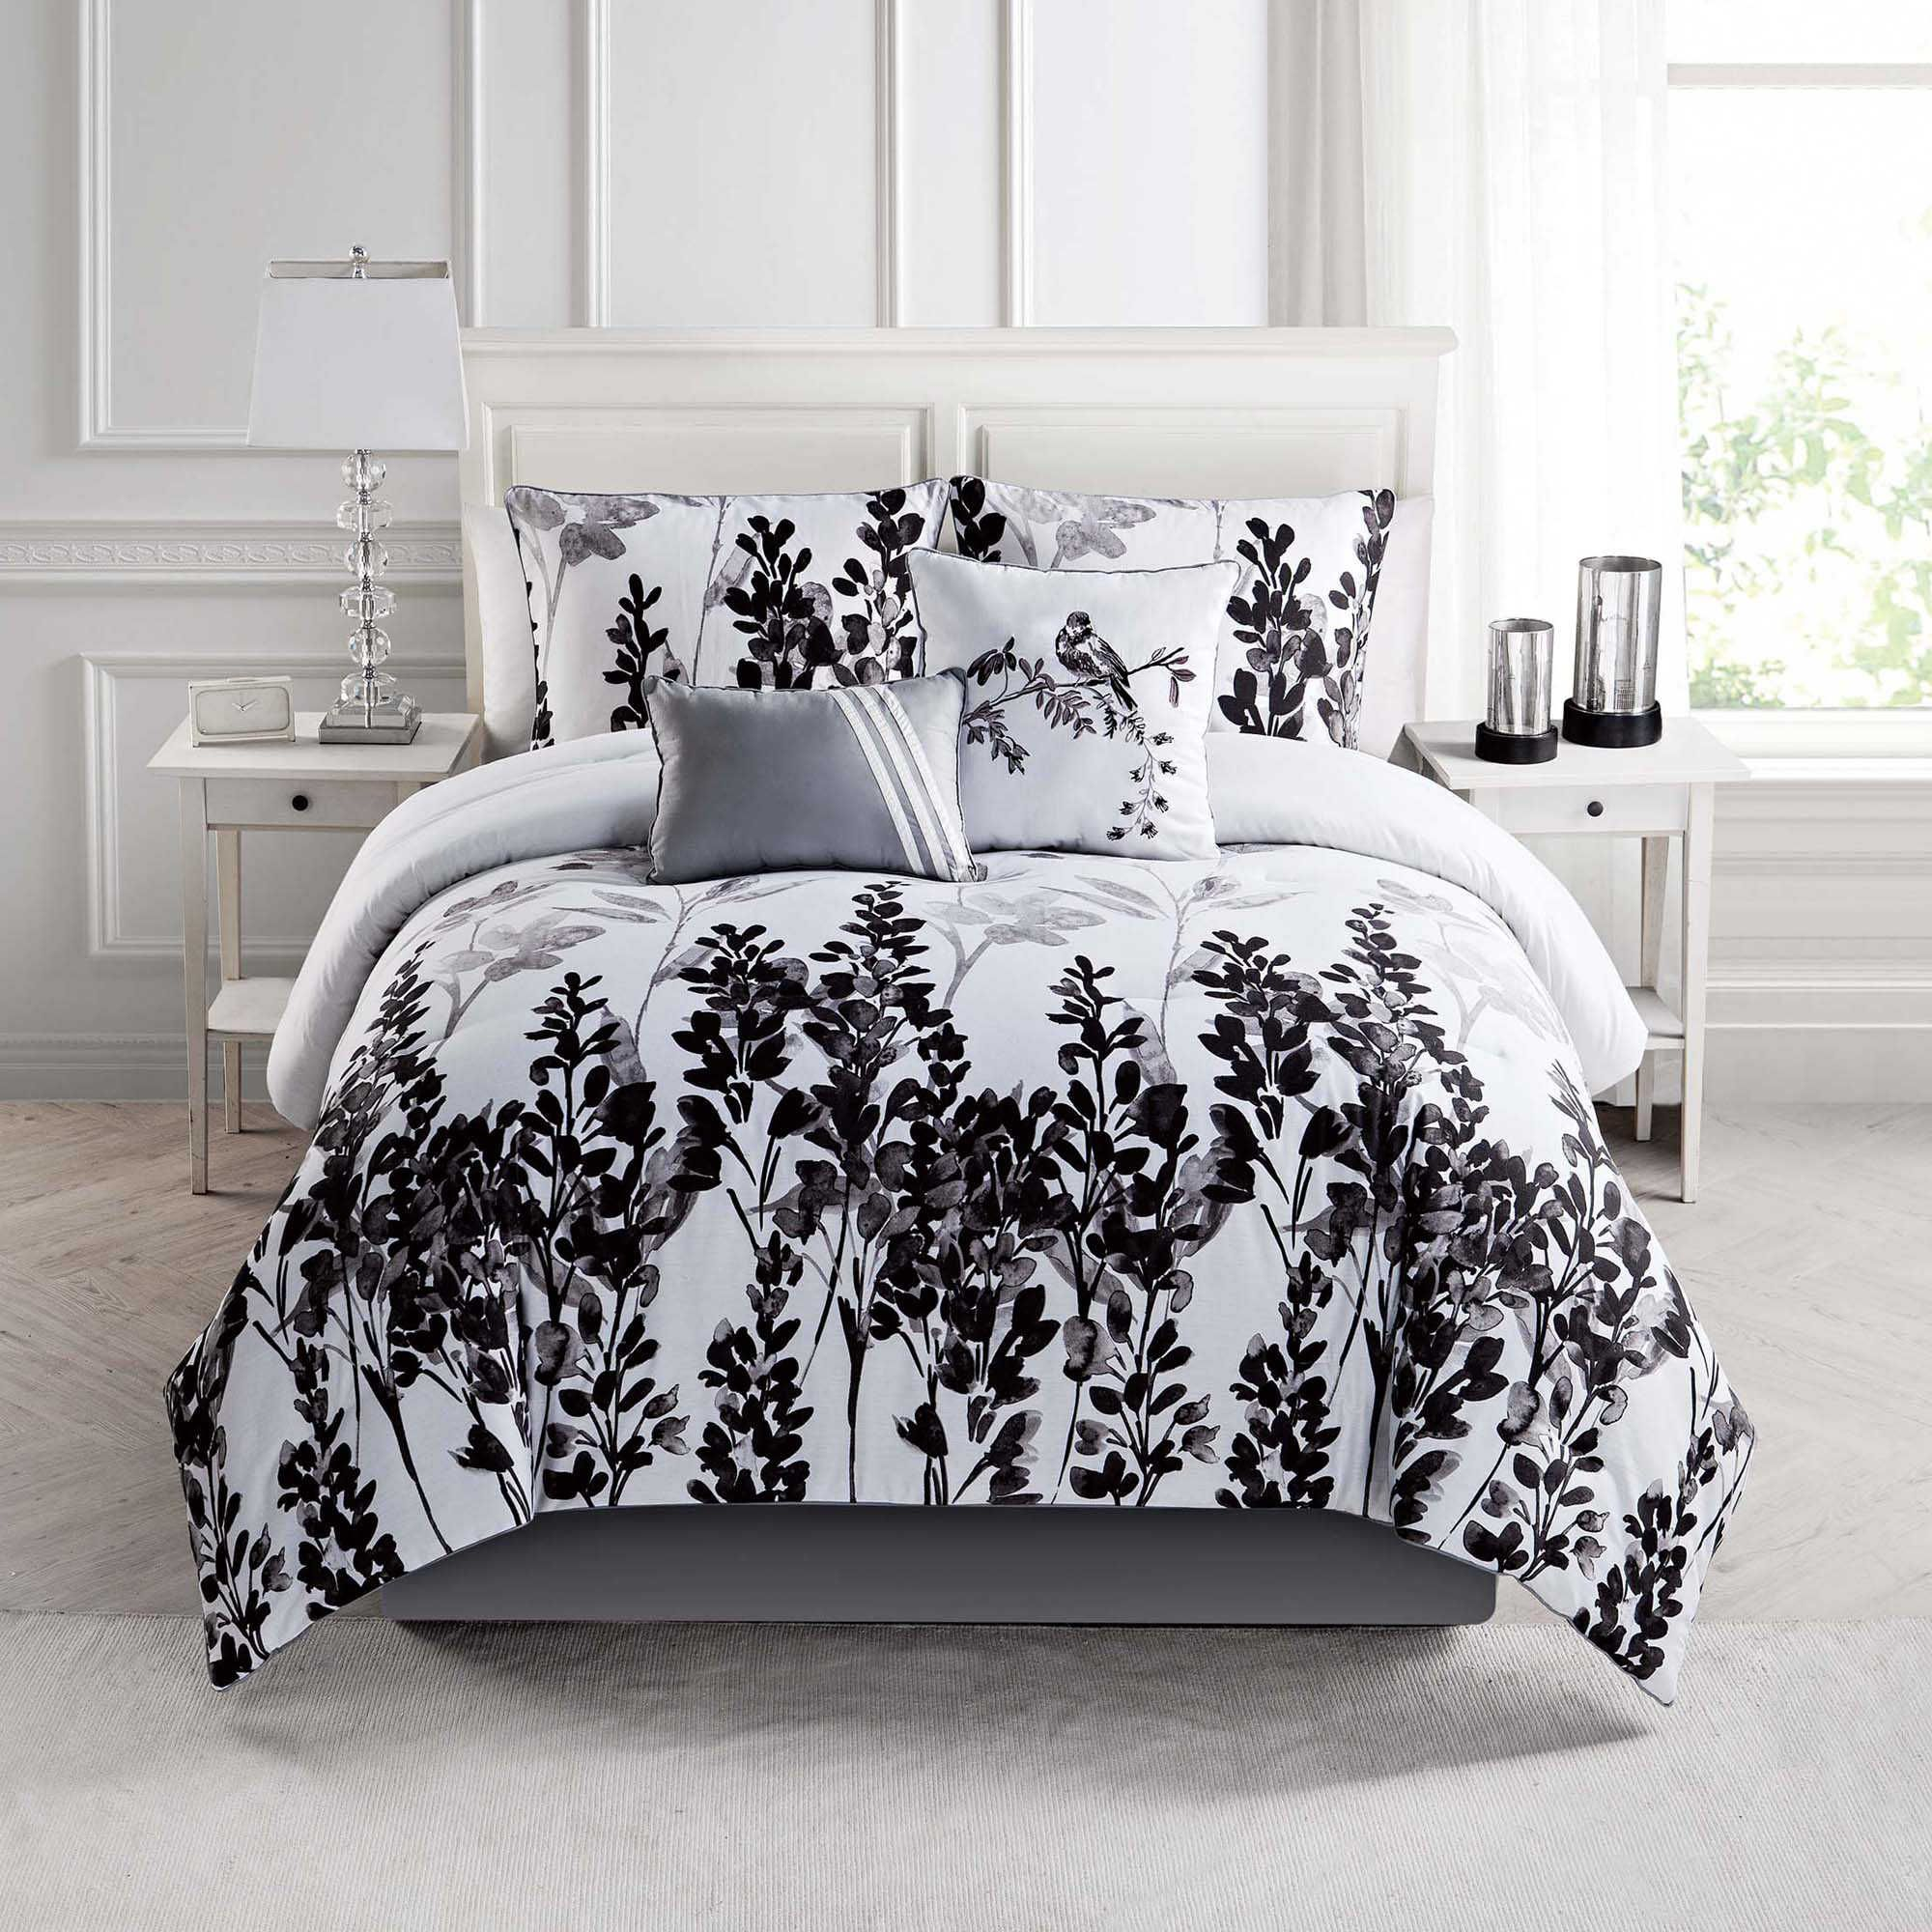 BB&B 75 (With images) Comforter sets, White comforter